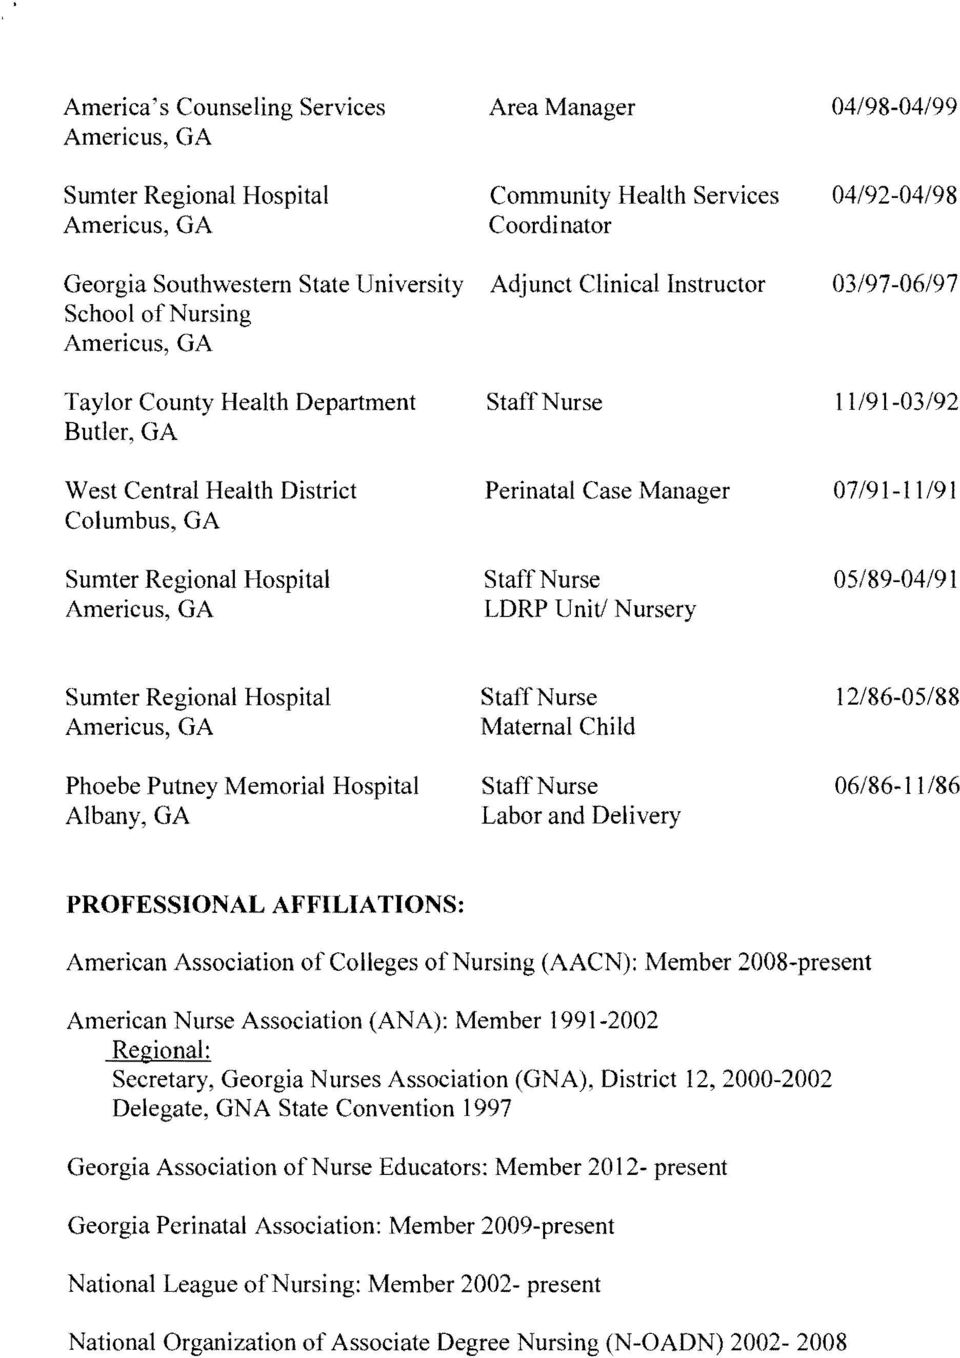 Nursery Sumter Regional Hospital Staff Nurse 12/86-05/88 Maternal Child Phoebe Putney Memorial Hospital Staff Nurse 06/86-11/86 Albany, GA Labor and Delivery PROFESSIONAL AFFILIATIONS: American